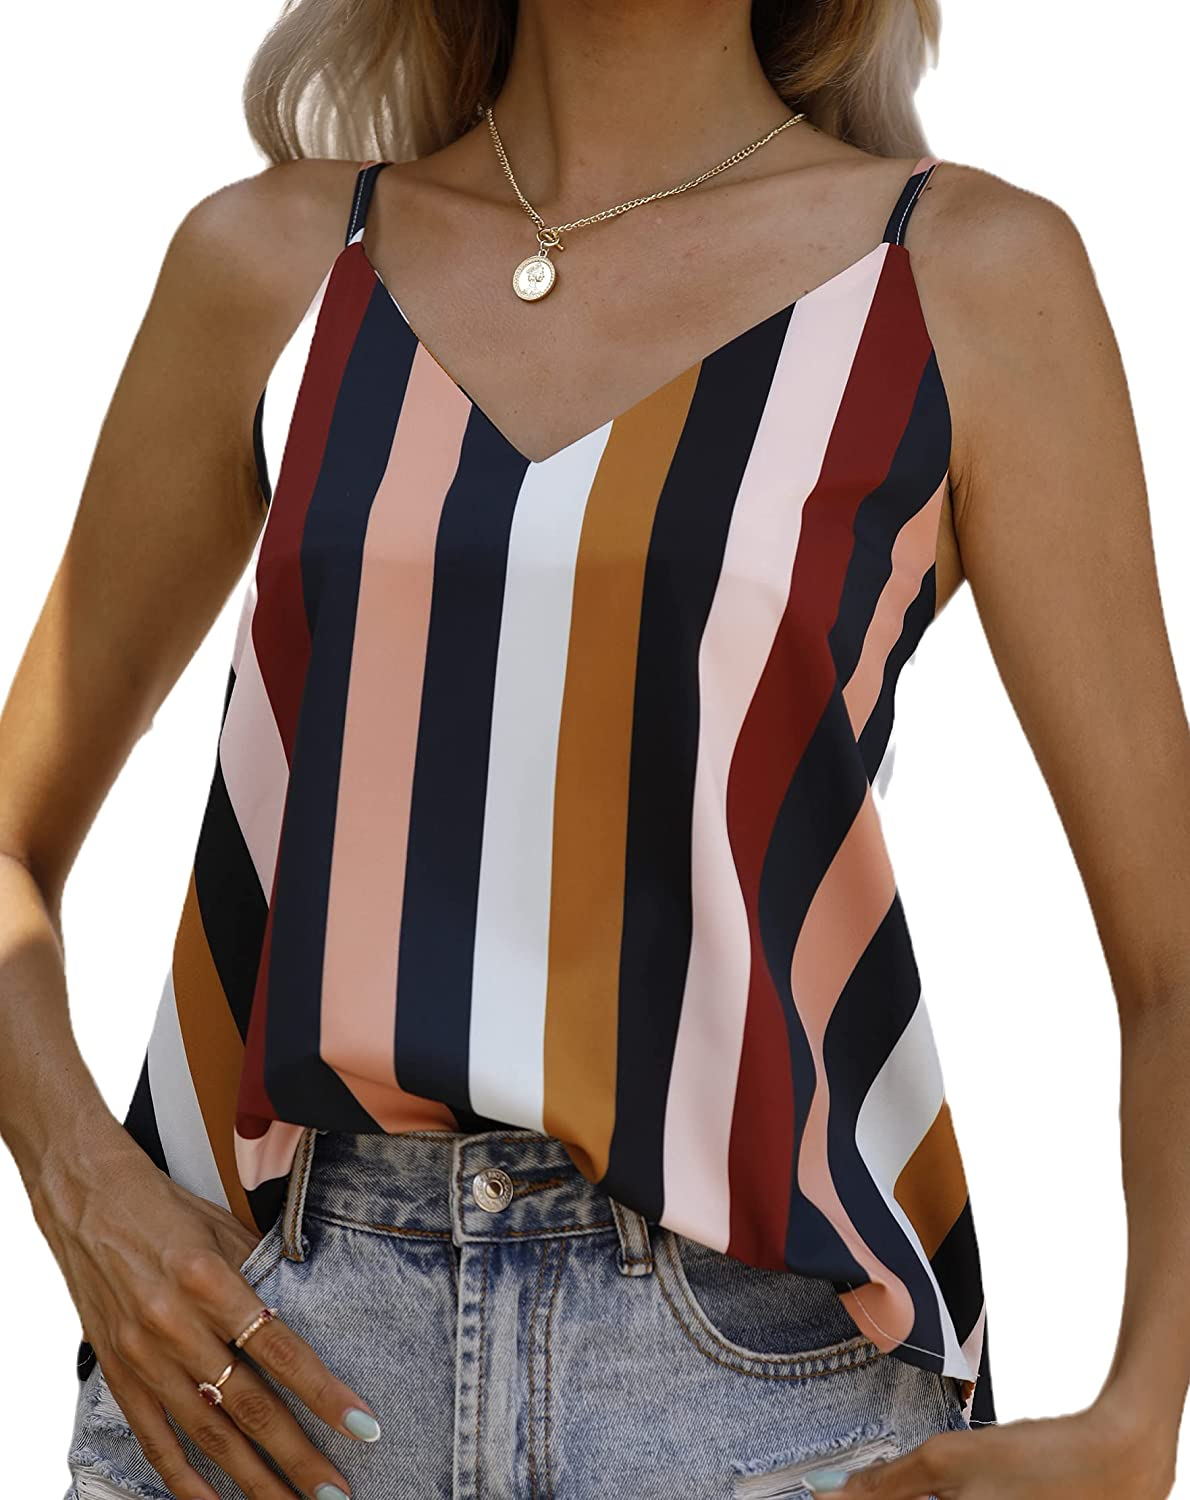 HNTAQU Womens Summer Stripe Loose Casual Sleeveless Shirts Scoop Neck Strappy Tank Tops Camis Blouses.